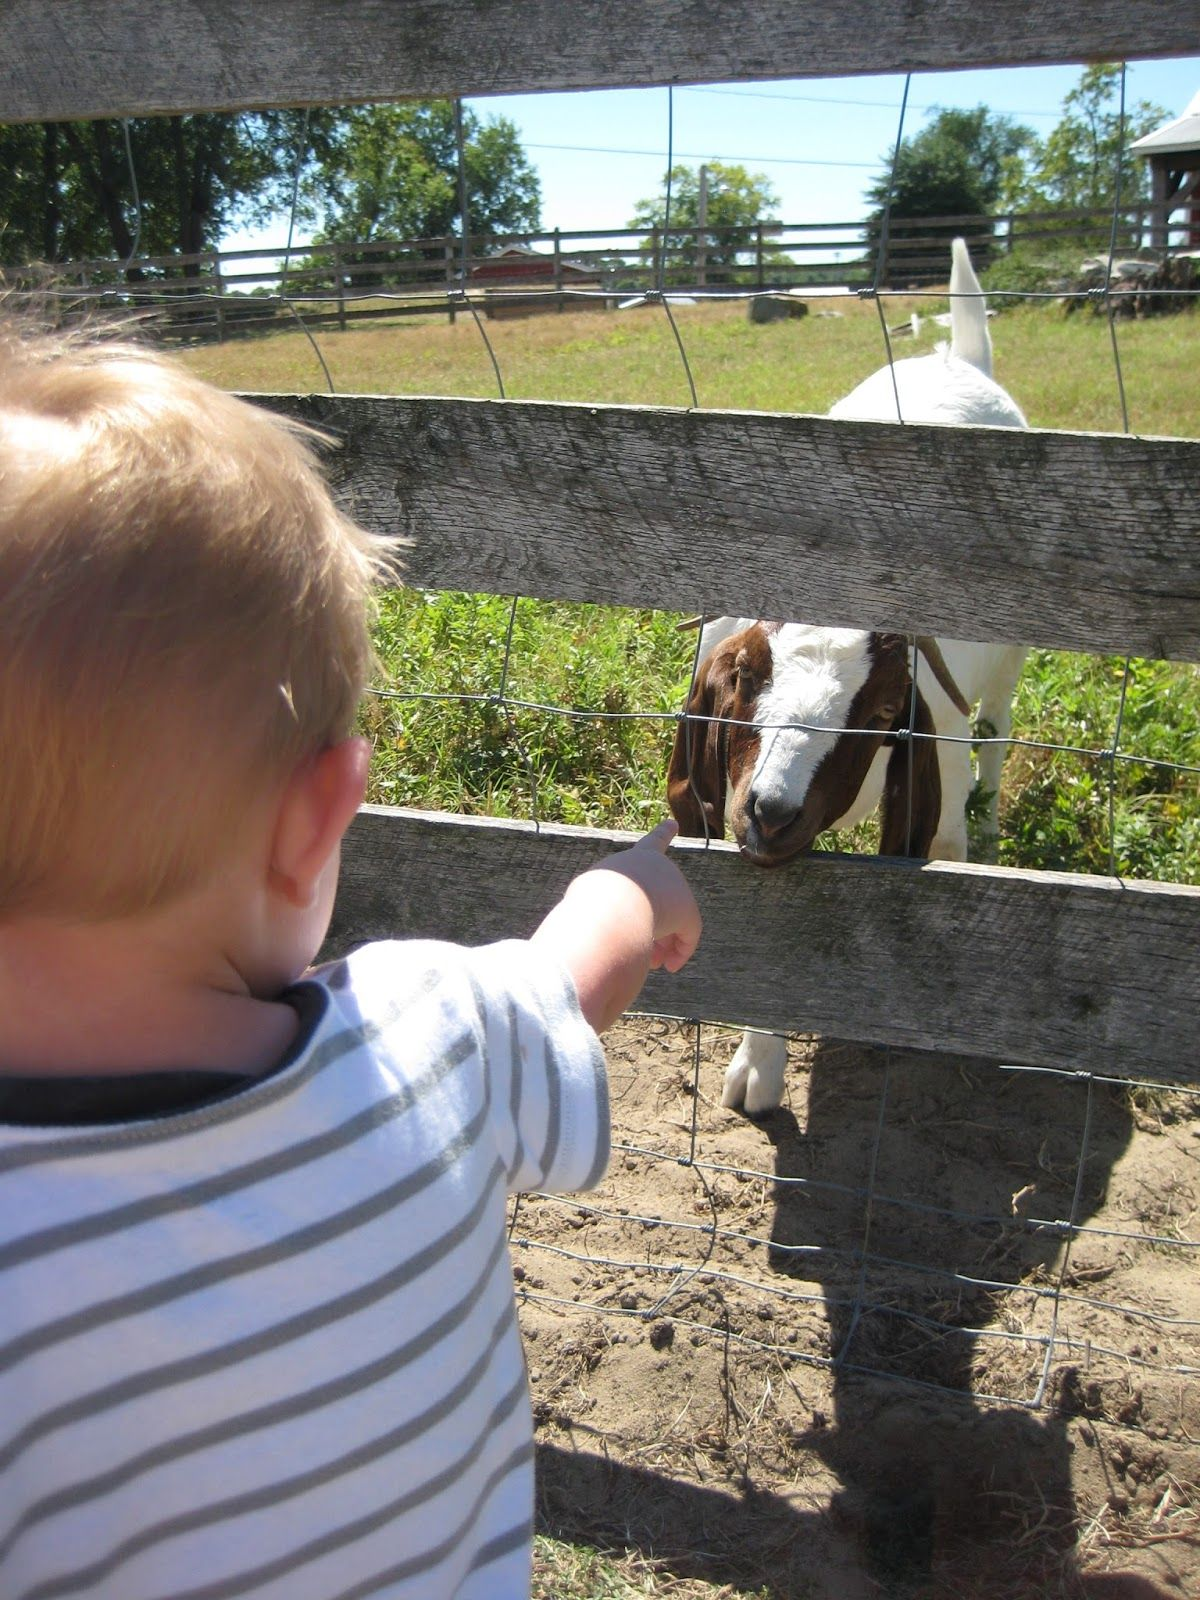 A child in a striped shirt pokes his finger through a wire fence toward a white and brown goat